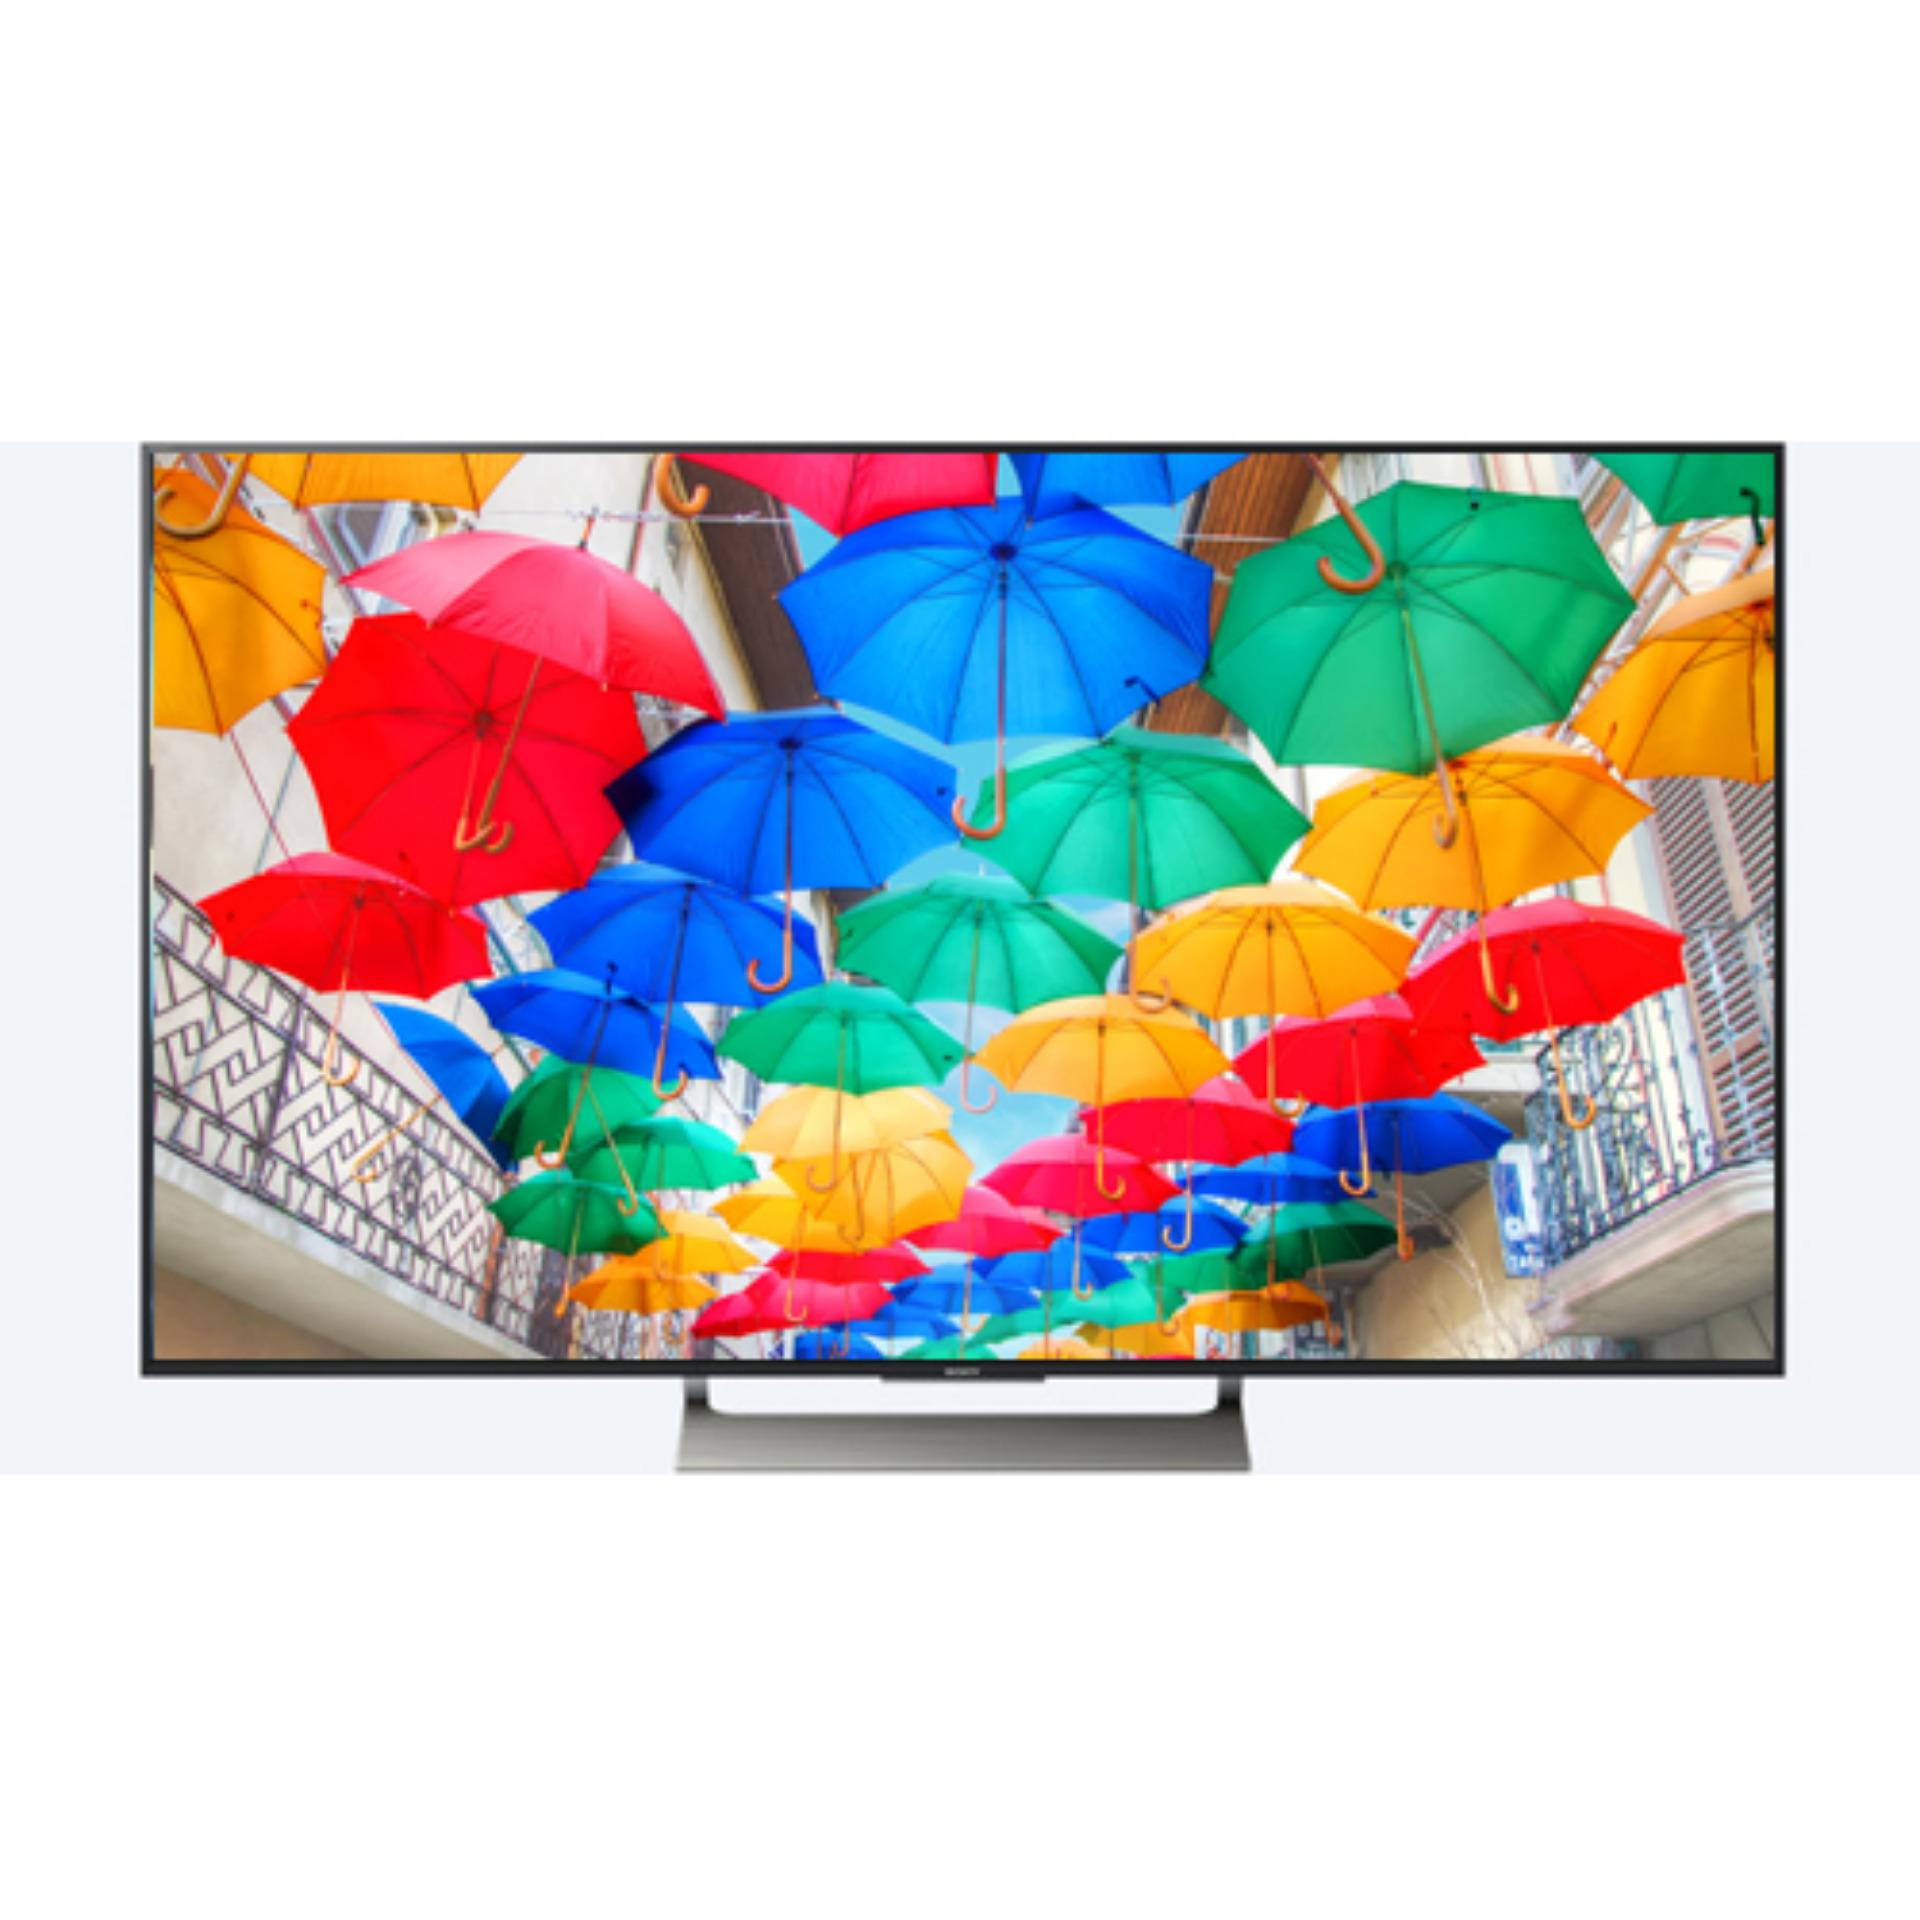 Price comparison Sony Led Smart TV Ultra HD 4K HDR Android KD55X9000E - New Product - Free Bracket